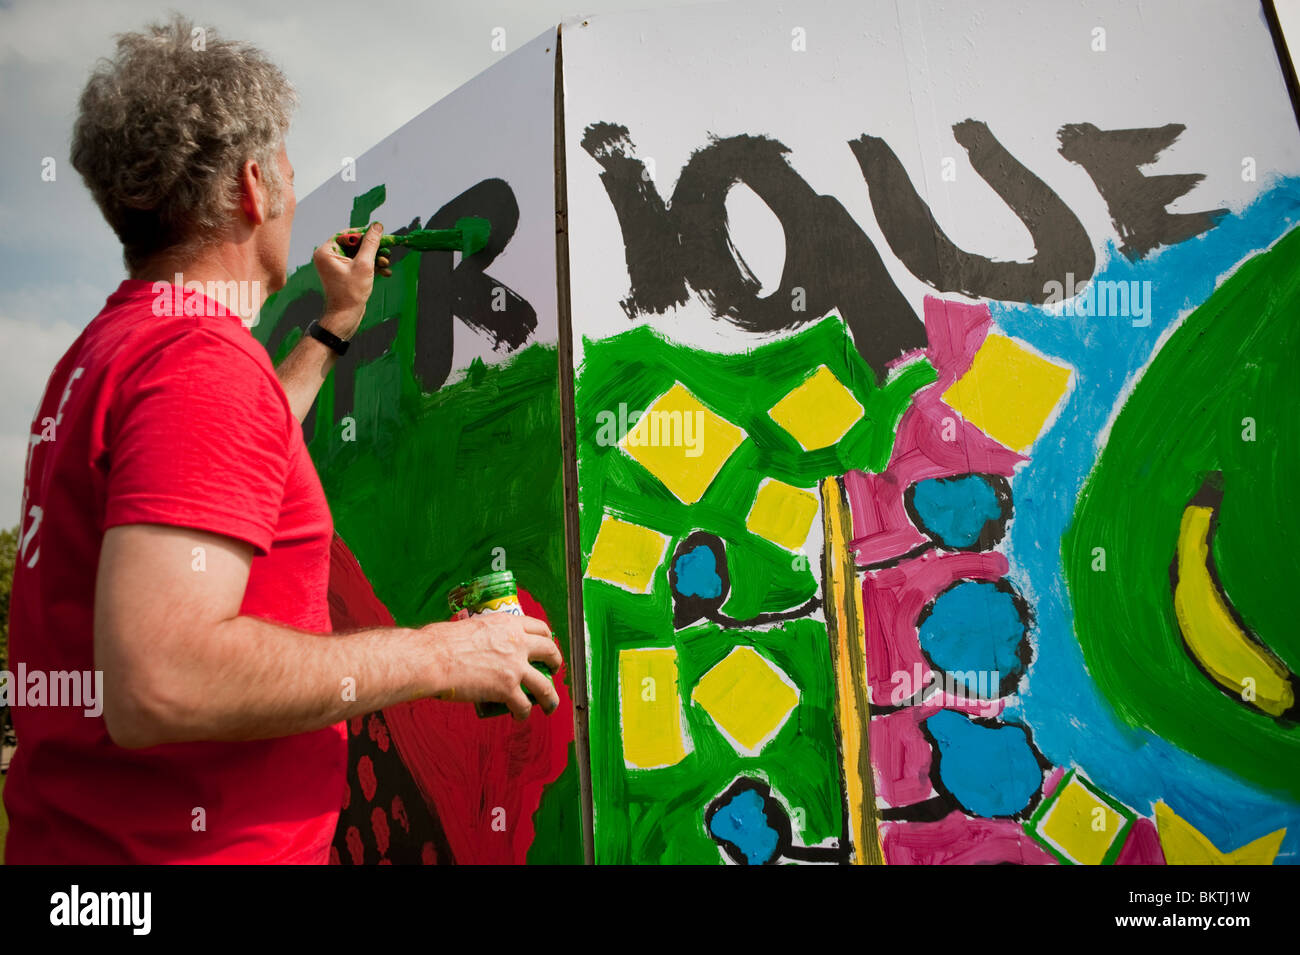 Celebration of World 'Fair Trade' Day, with Man Painting Wall, on Lawn of La Villette Park, to Encourage - Stock Image